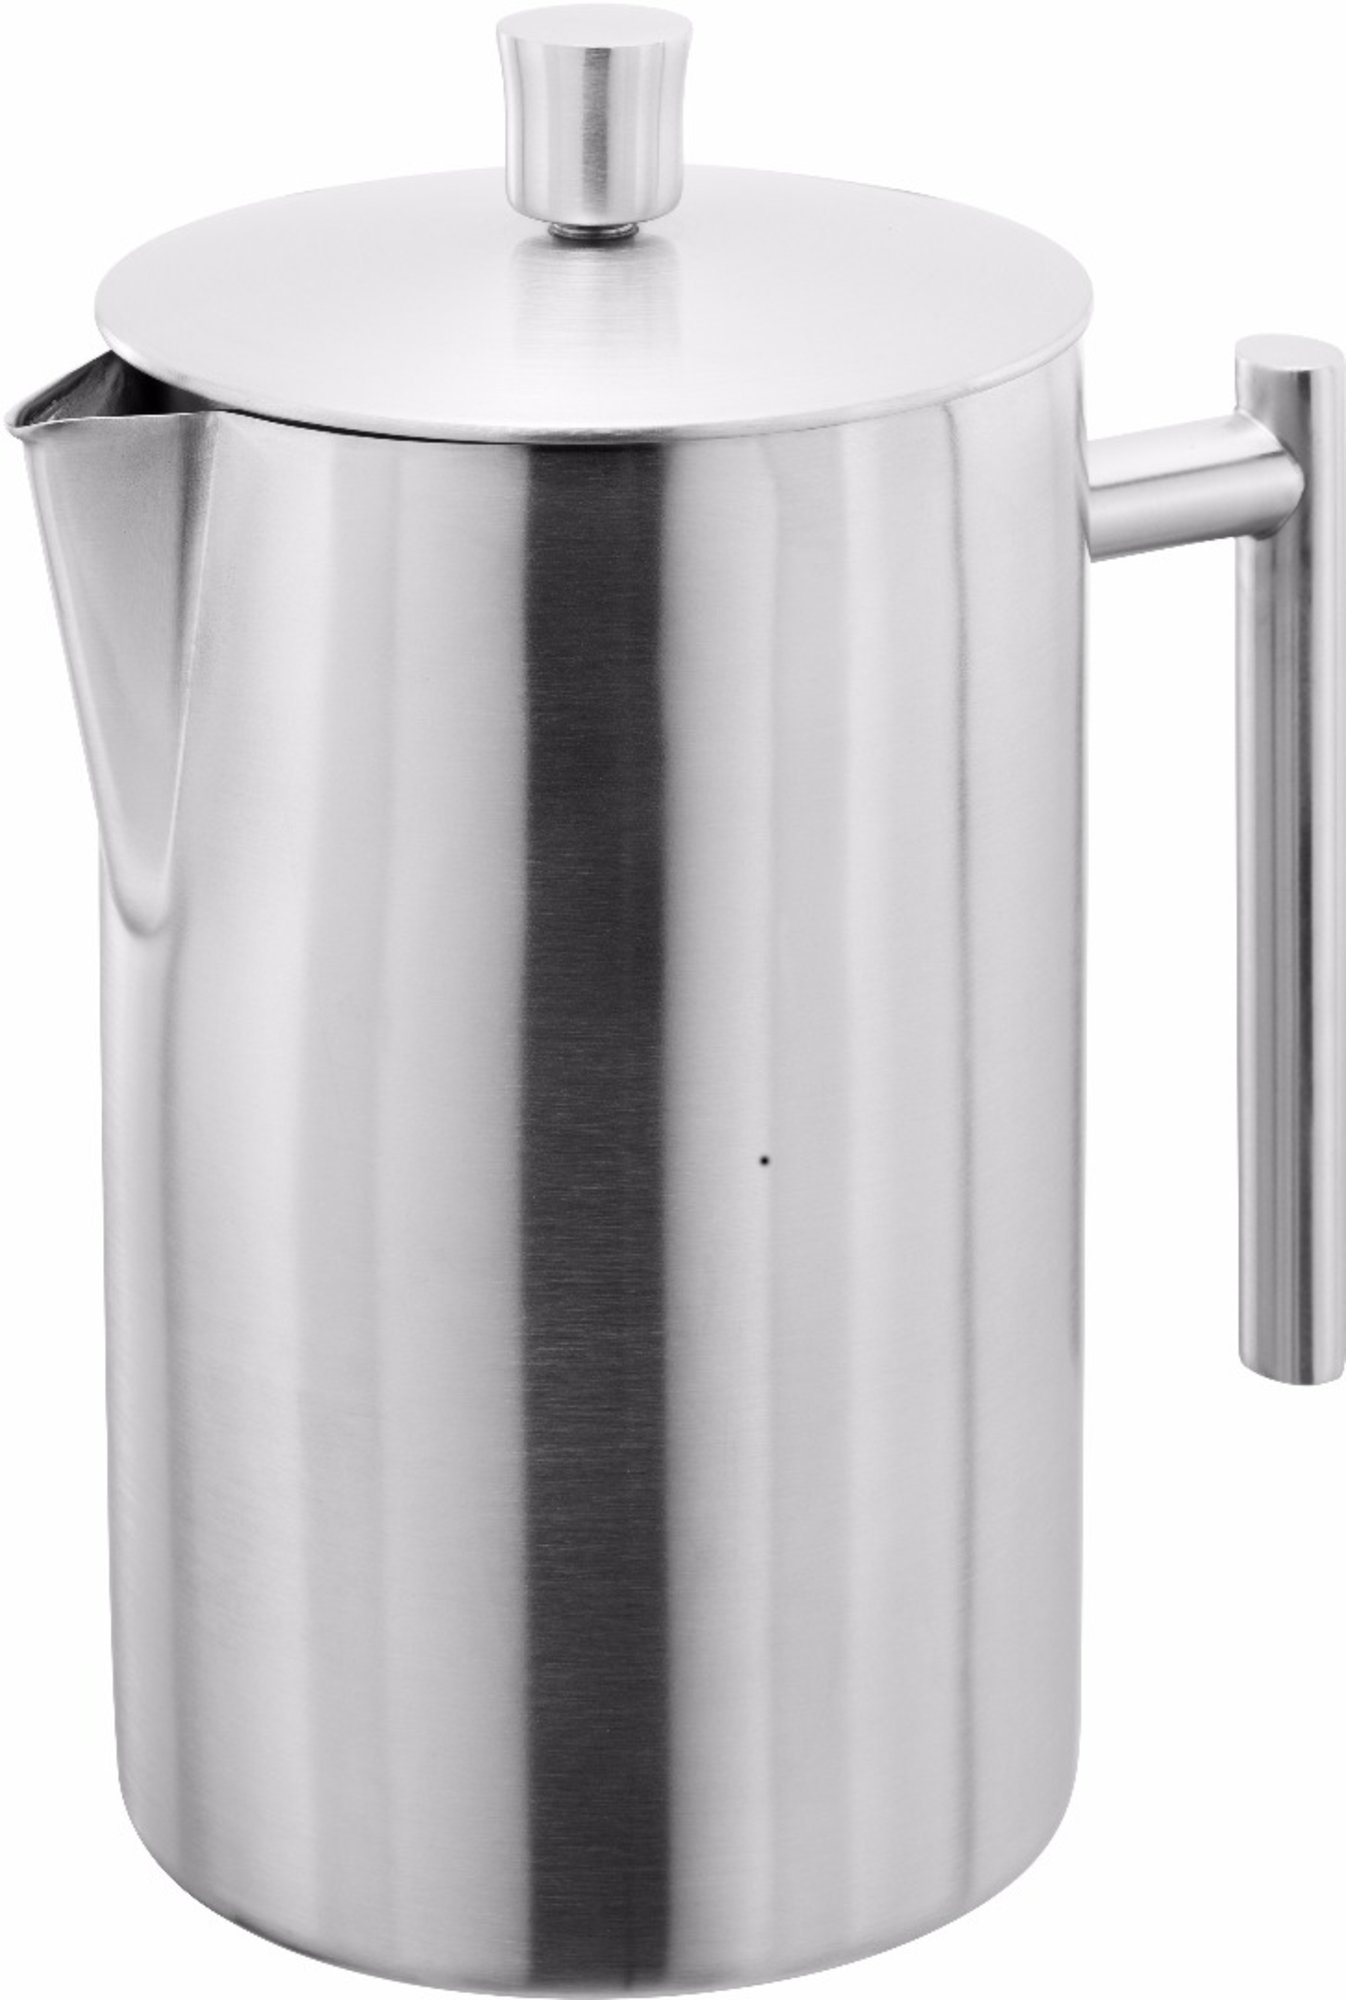 Horwood Cafetiere Doublewall 1,4L 12 cup